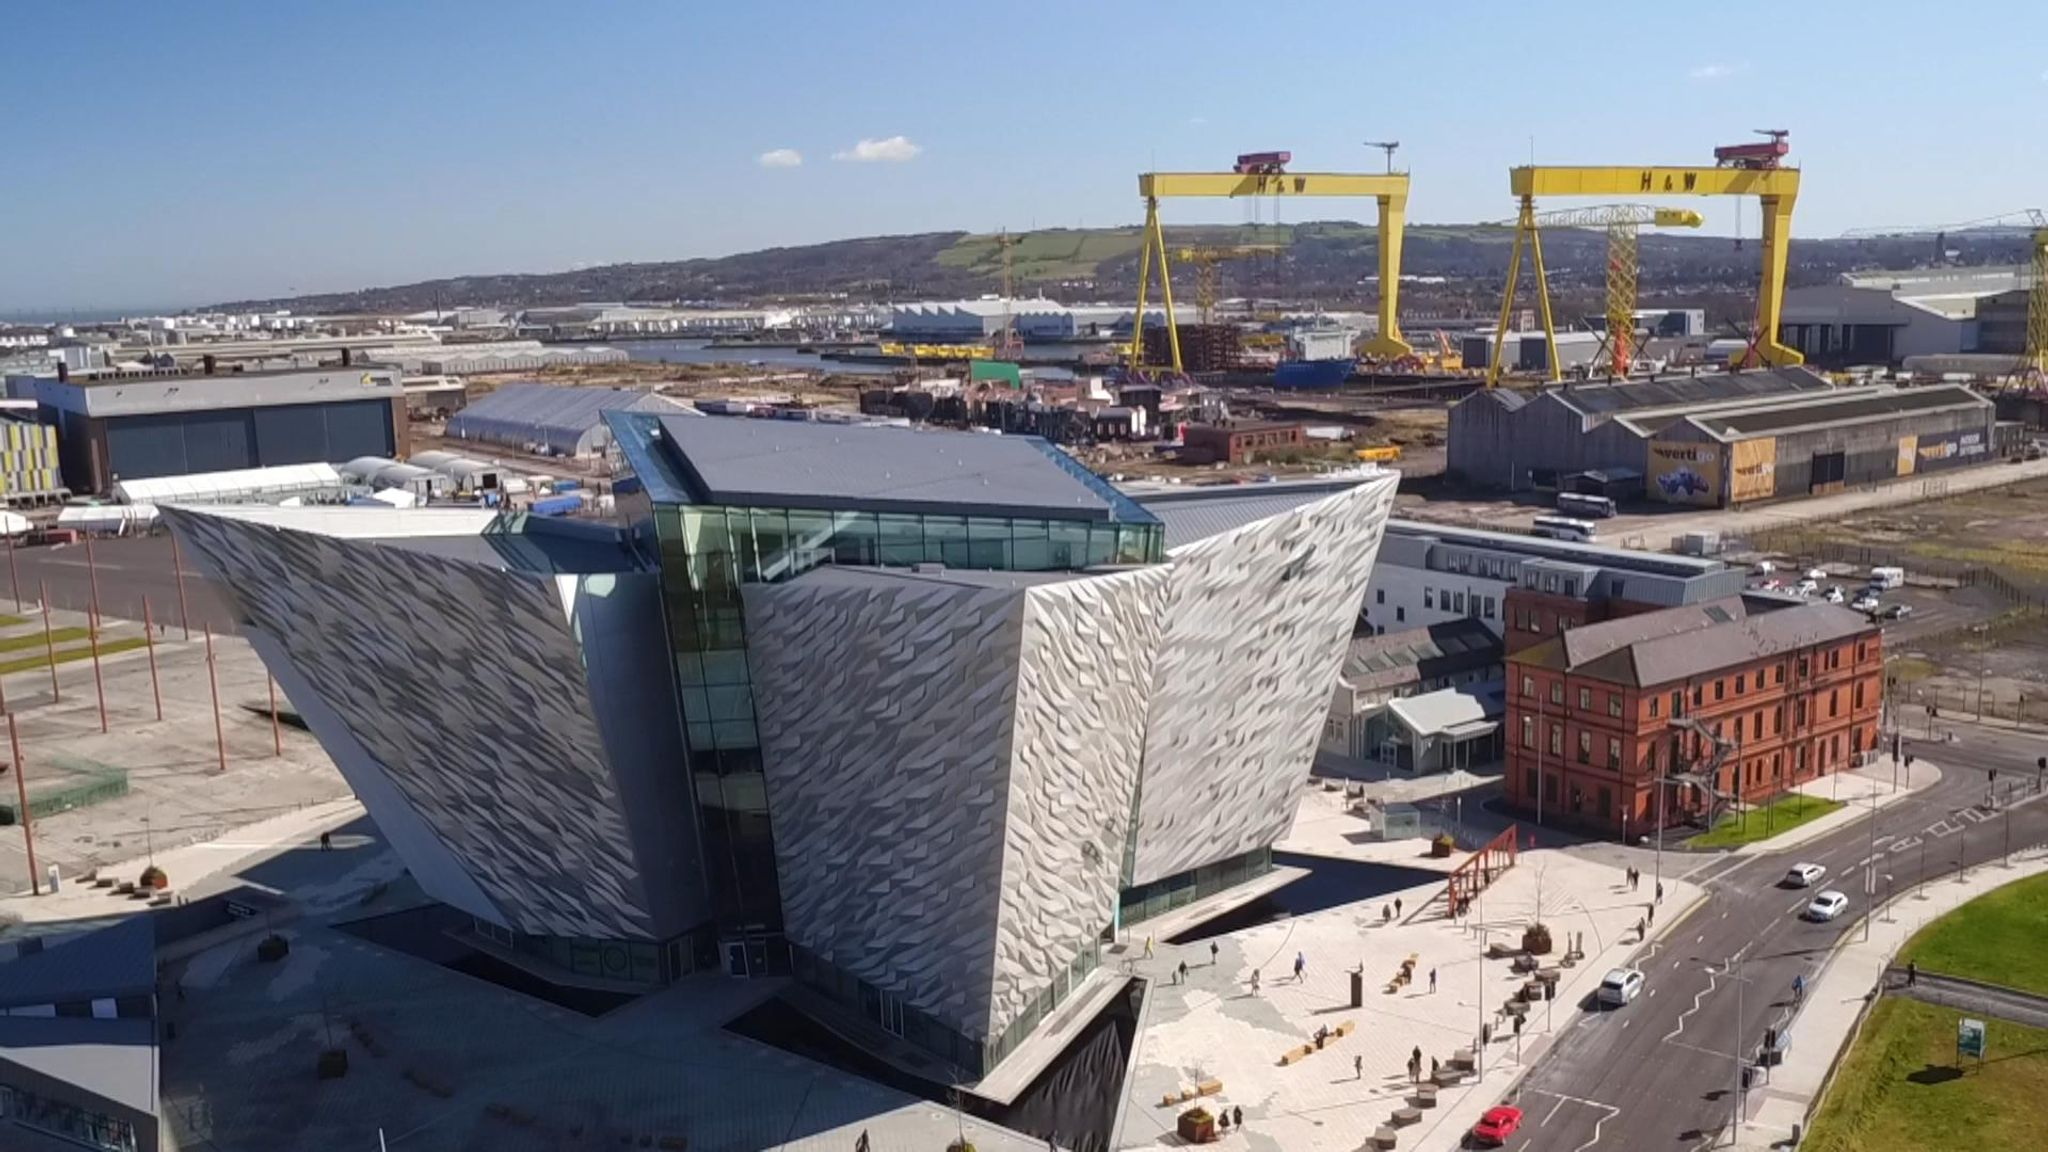 Harland and Wolff: Belfast shipyard that built Titanic saved from closure in £6m rescue deal